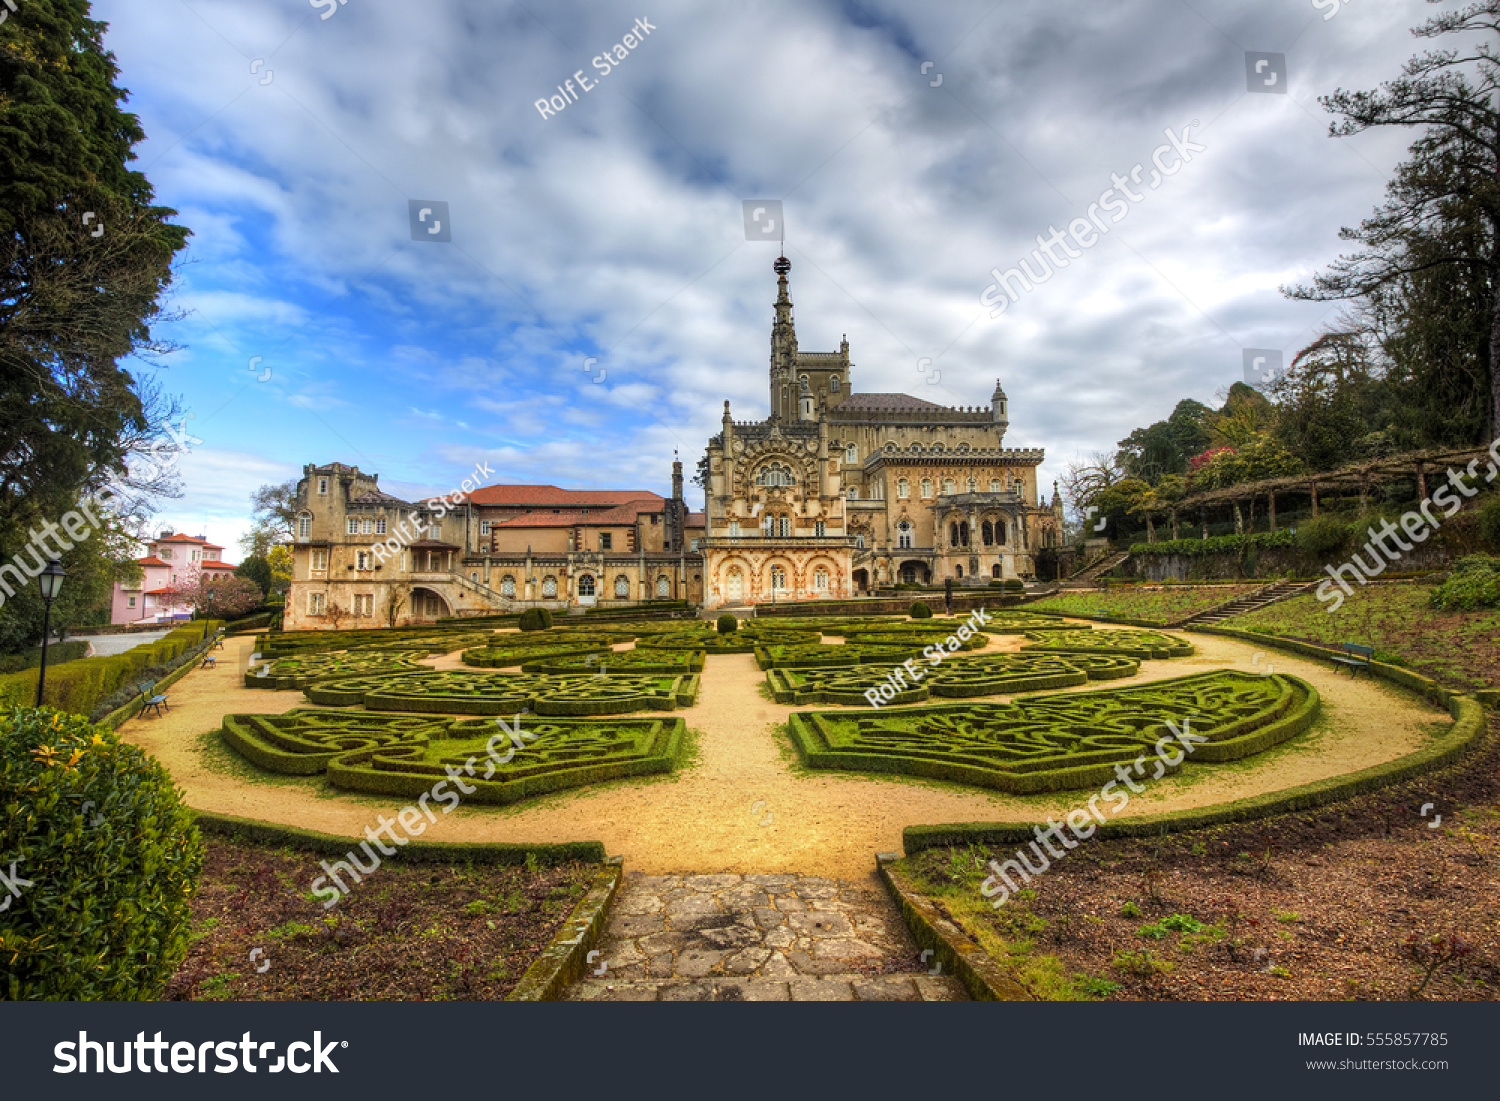 Bucaco Palace and Gardens, Serra do Bucaco, Mealhada, Portugal #555857785